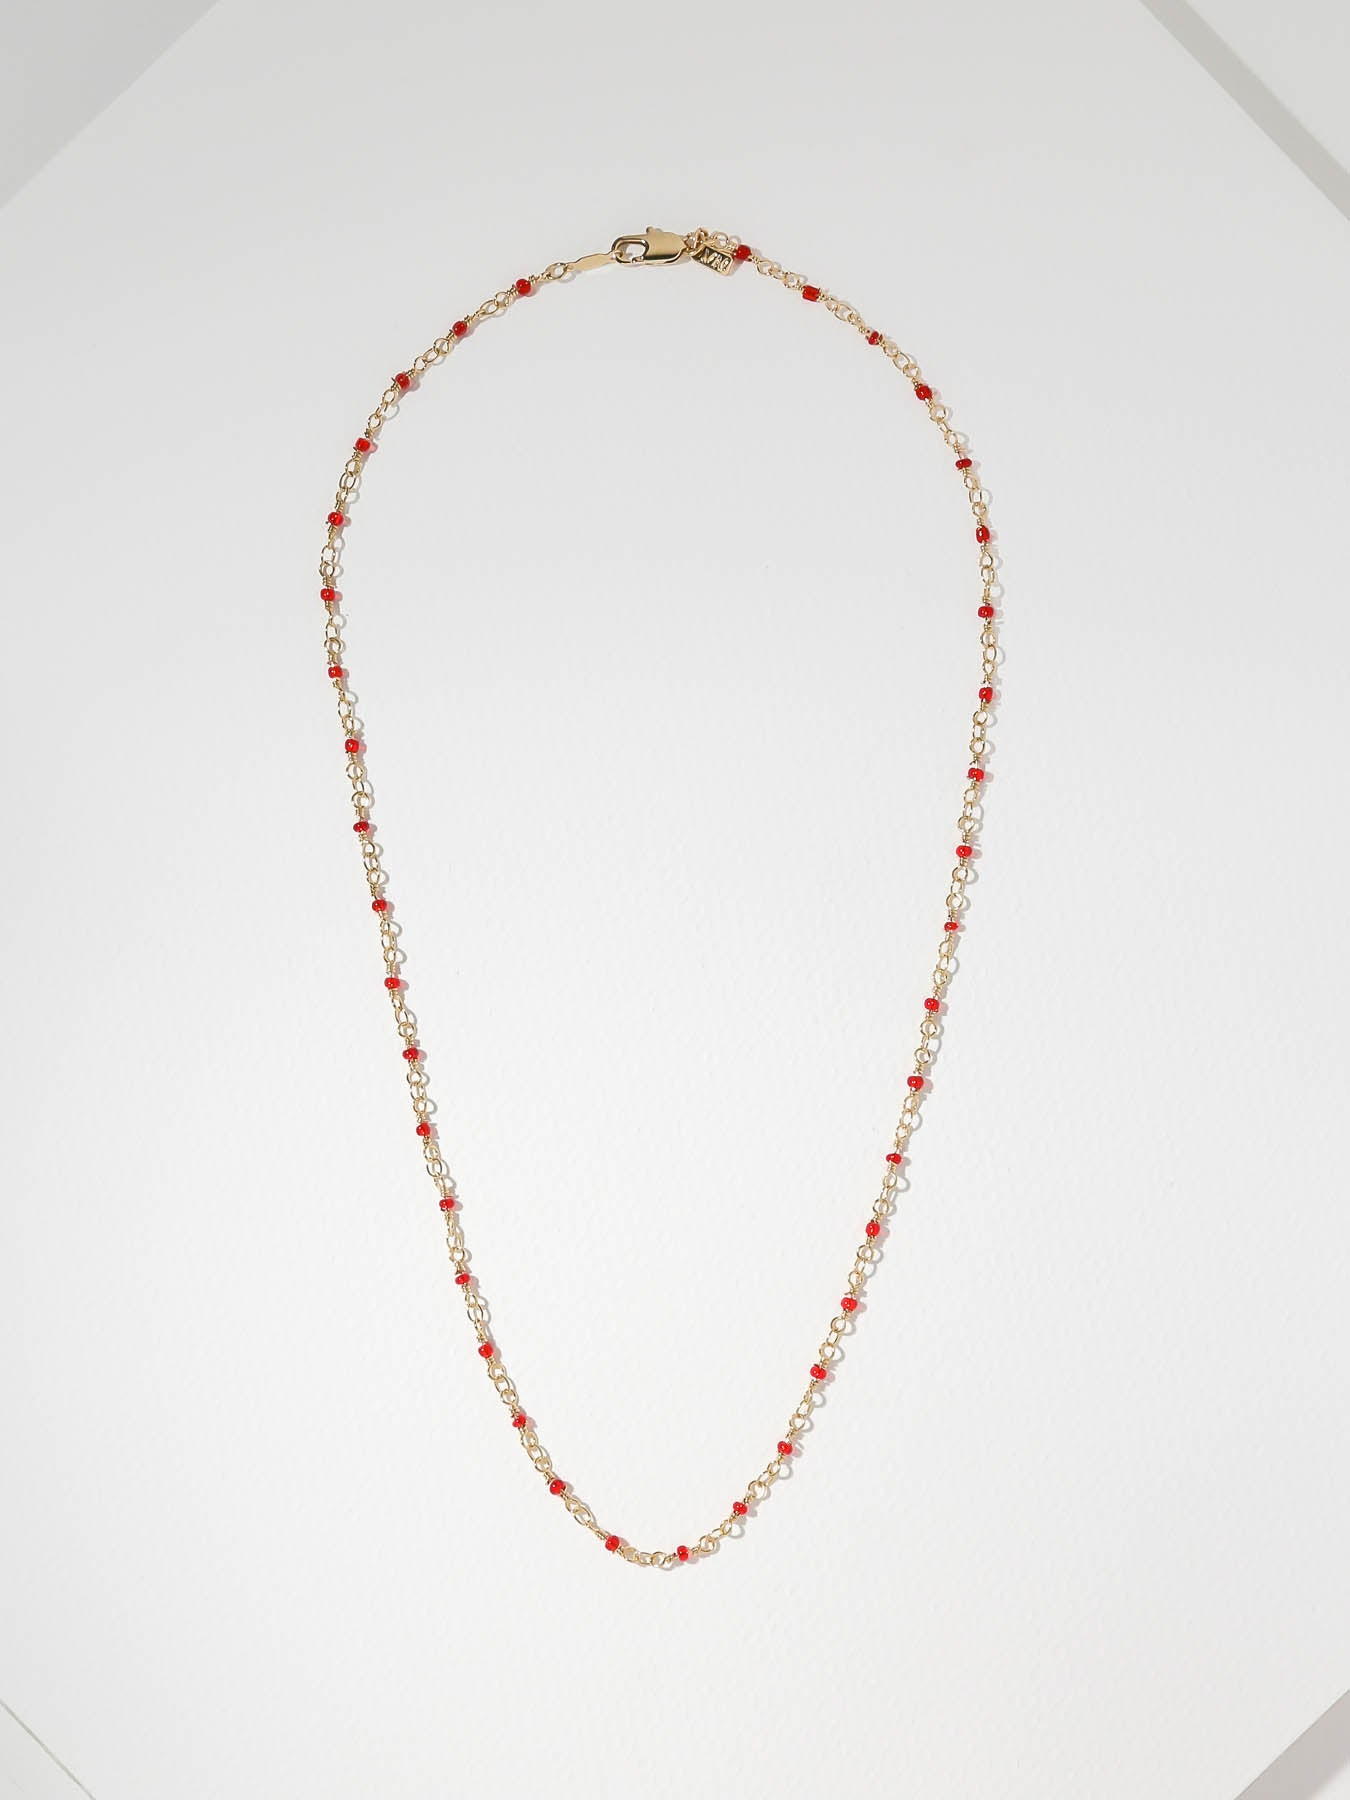 The Cosimo Red Chain